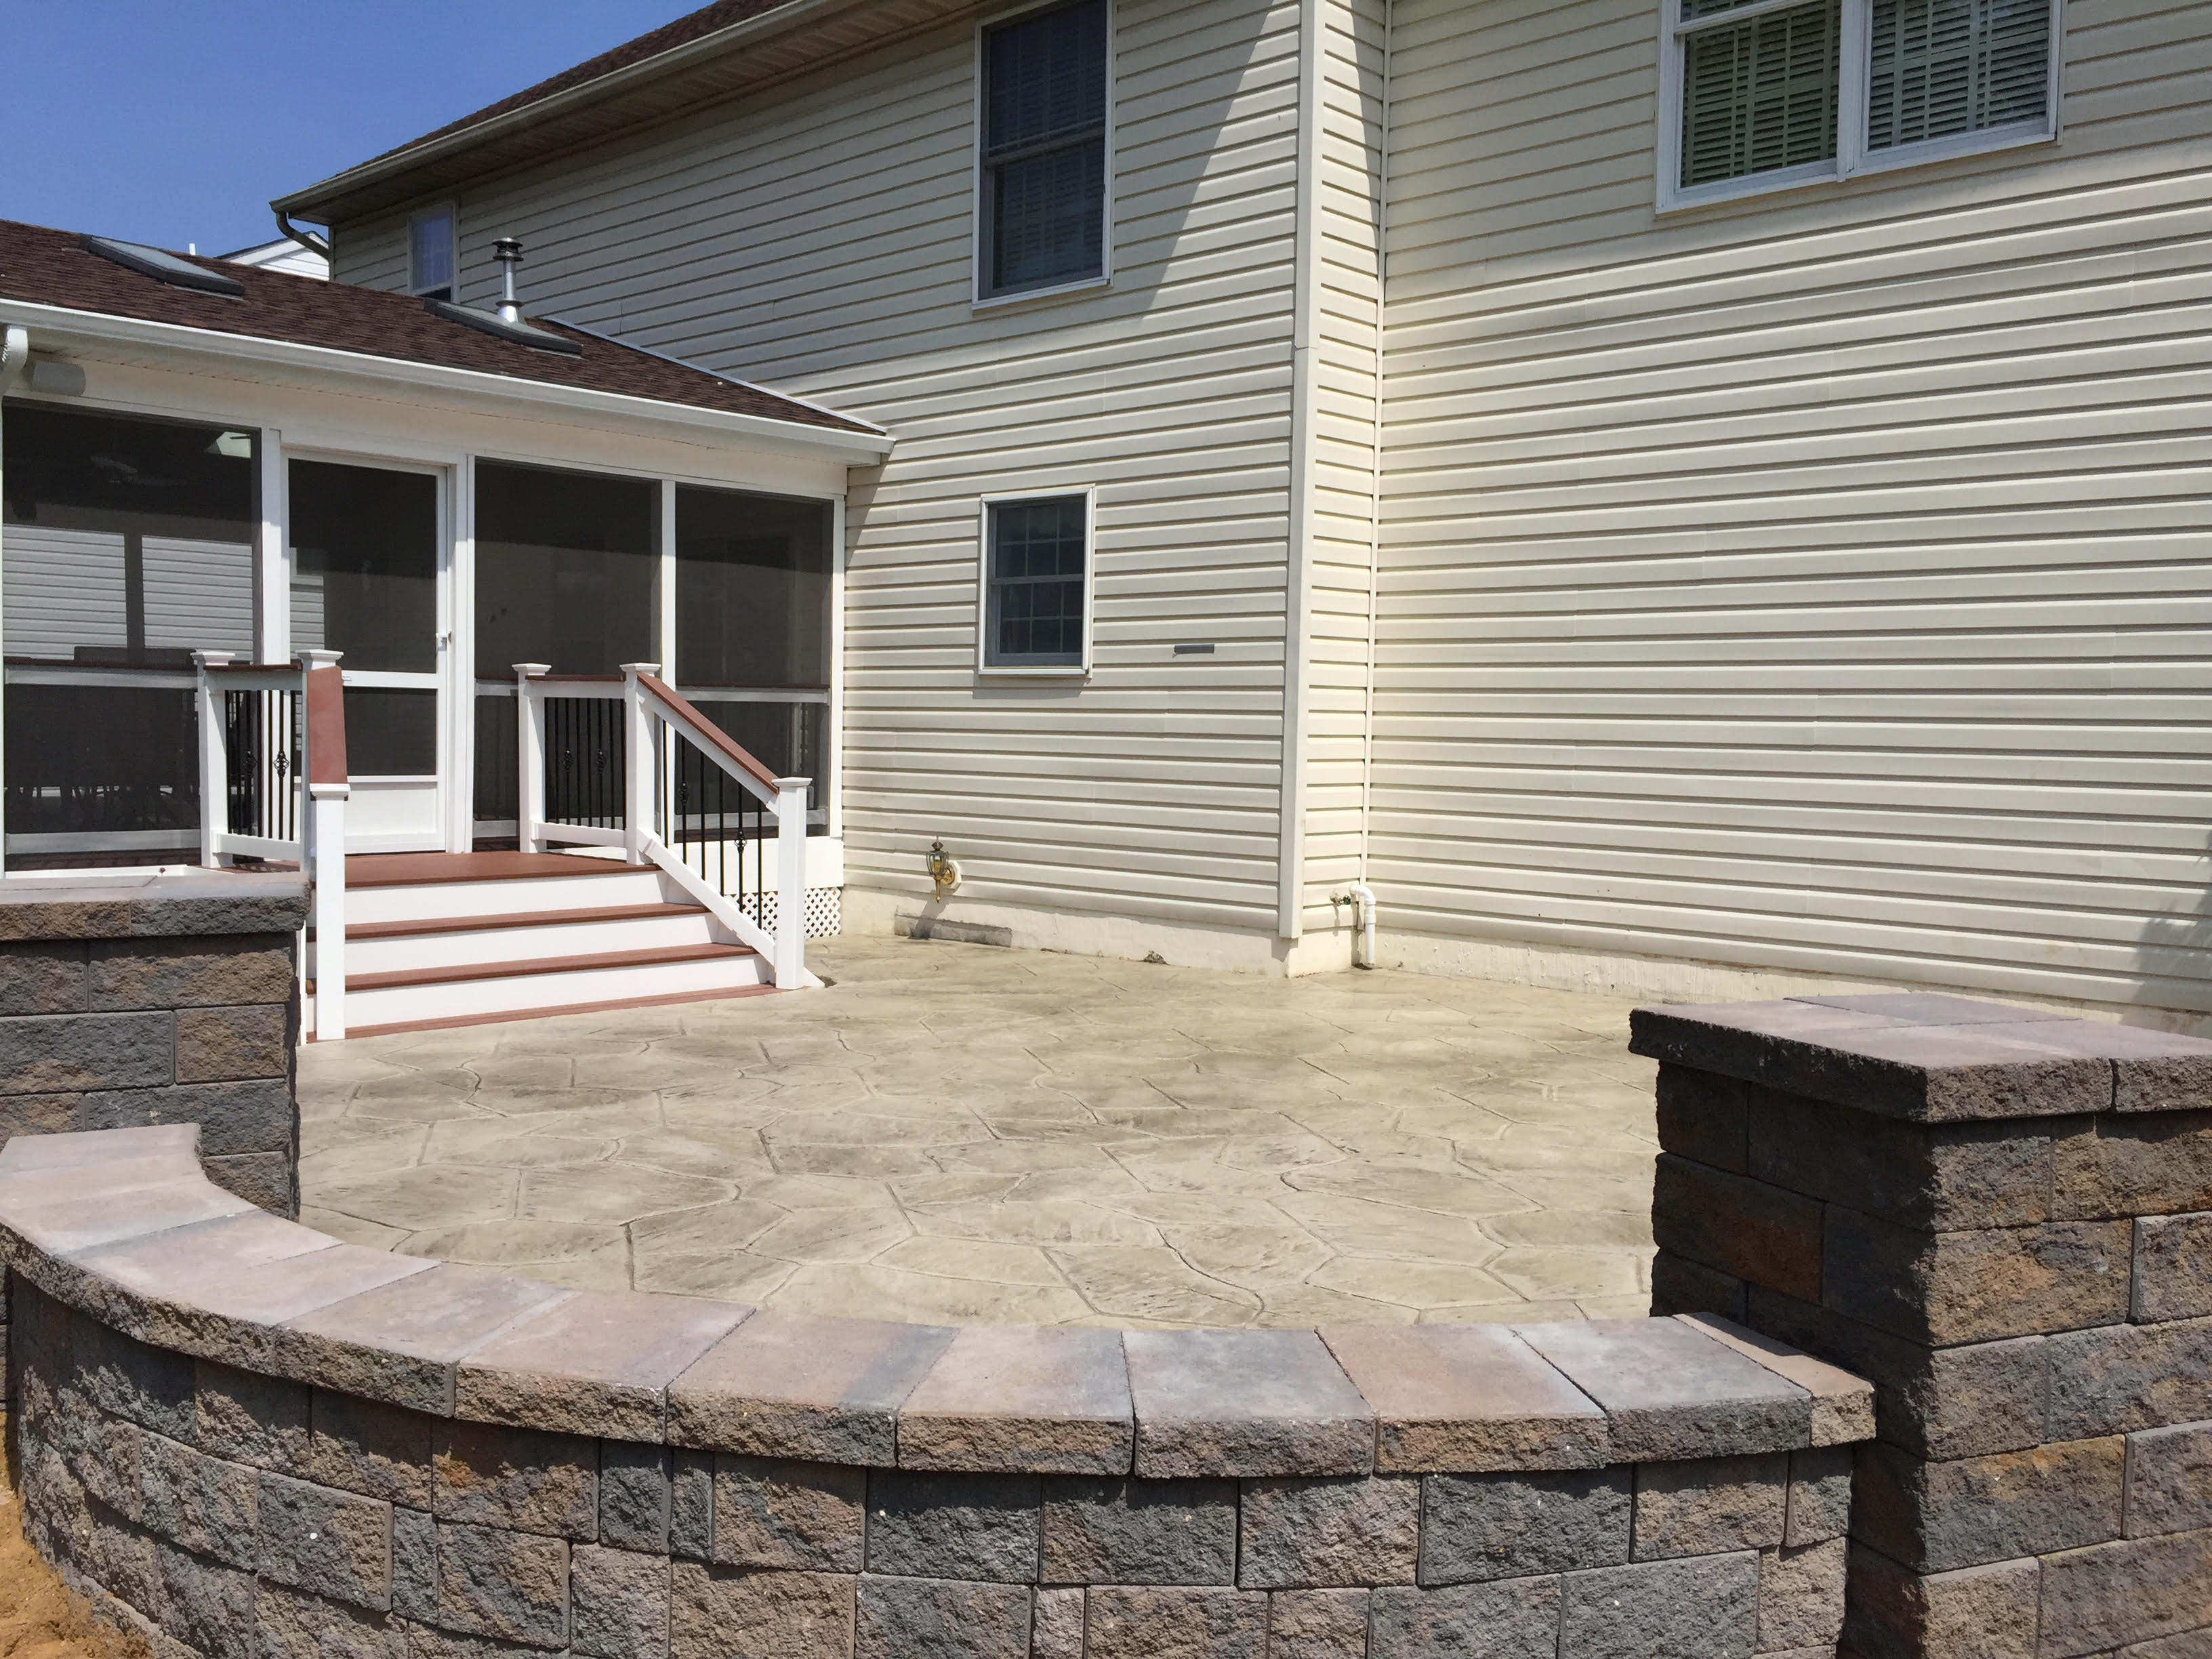 Artistic Stamped Concrete image 1